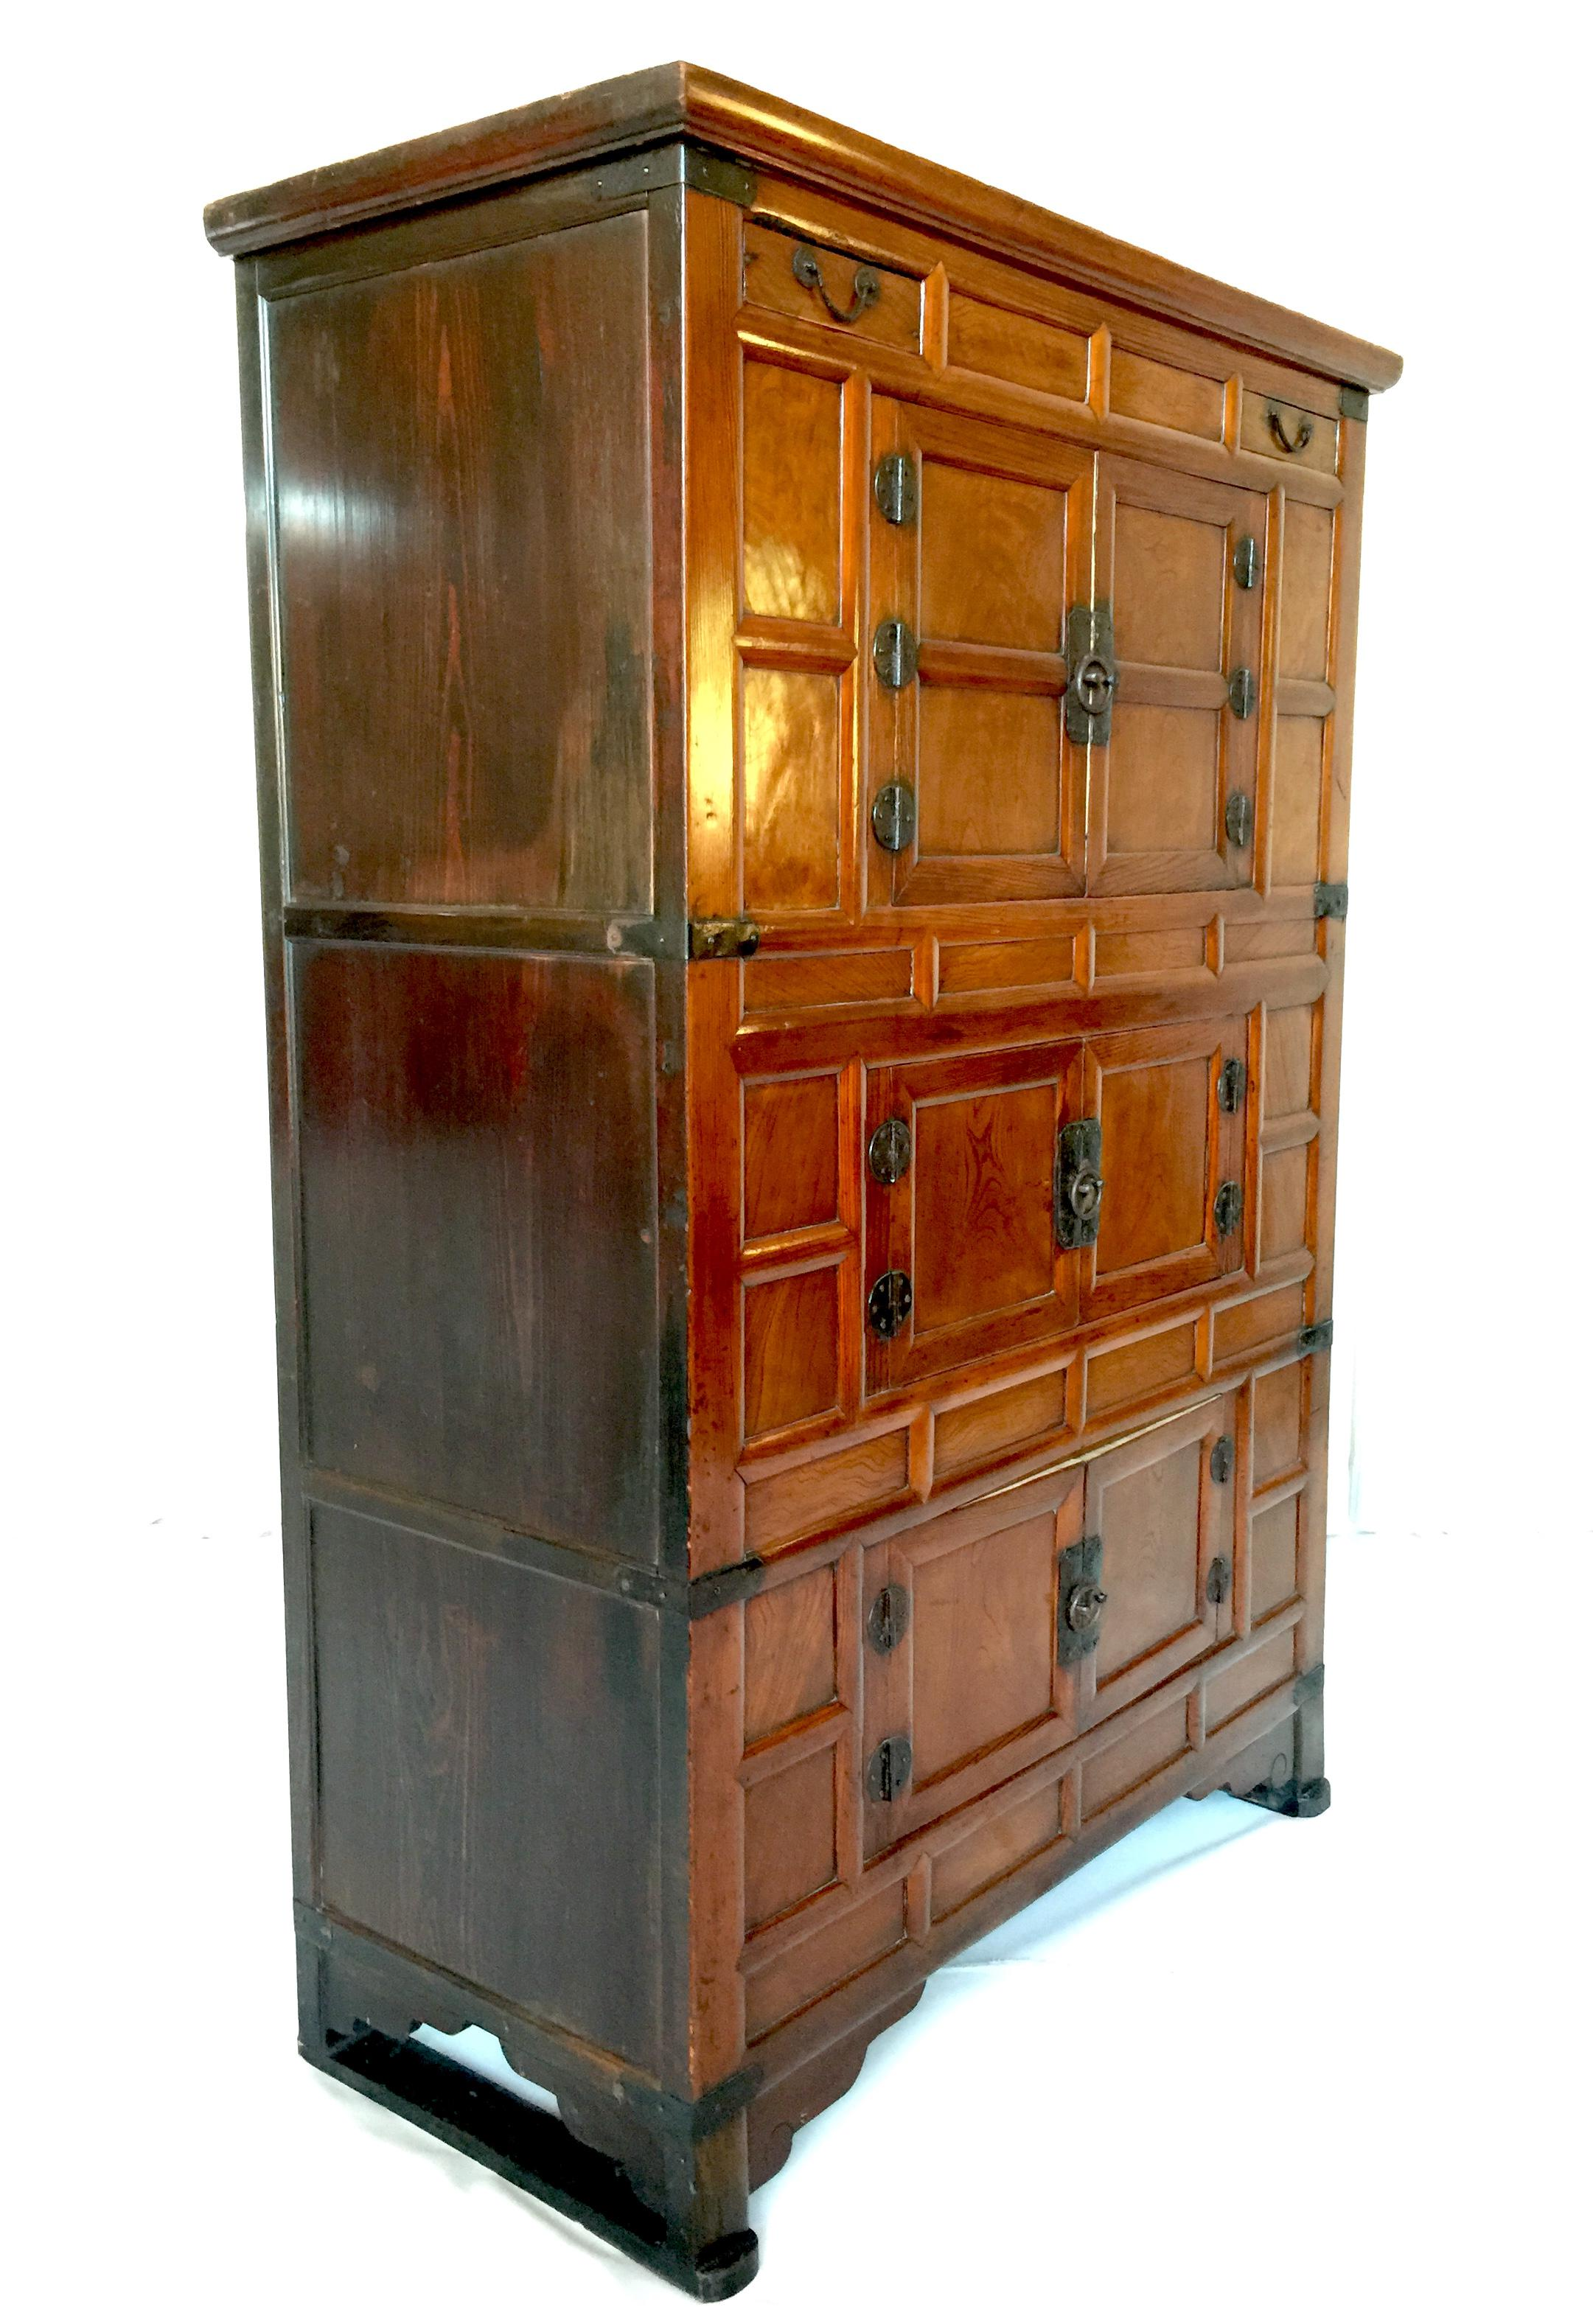 Beautiful19th Century Antique Three Level Tansu Cabinet (samchu0027ung Chu0027an